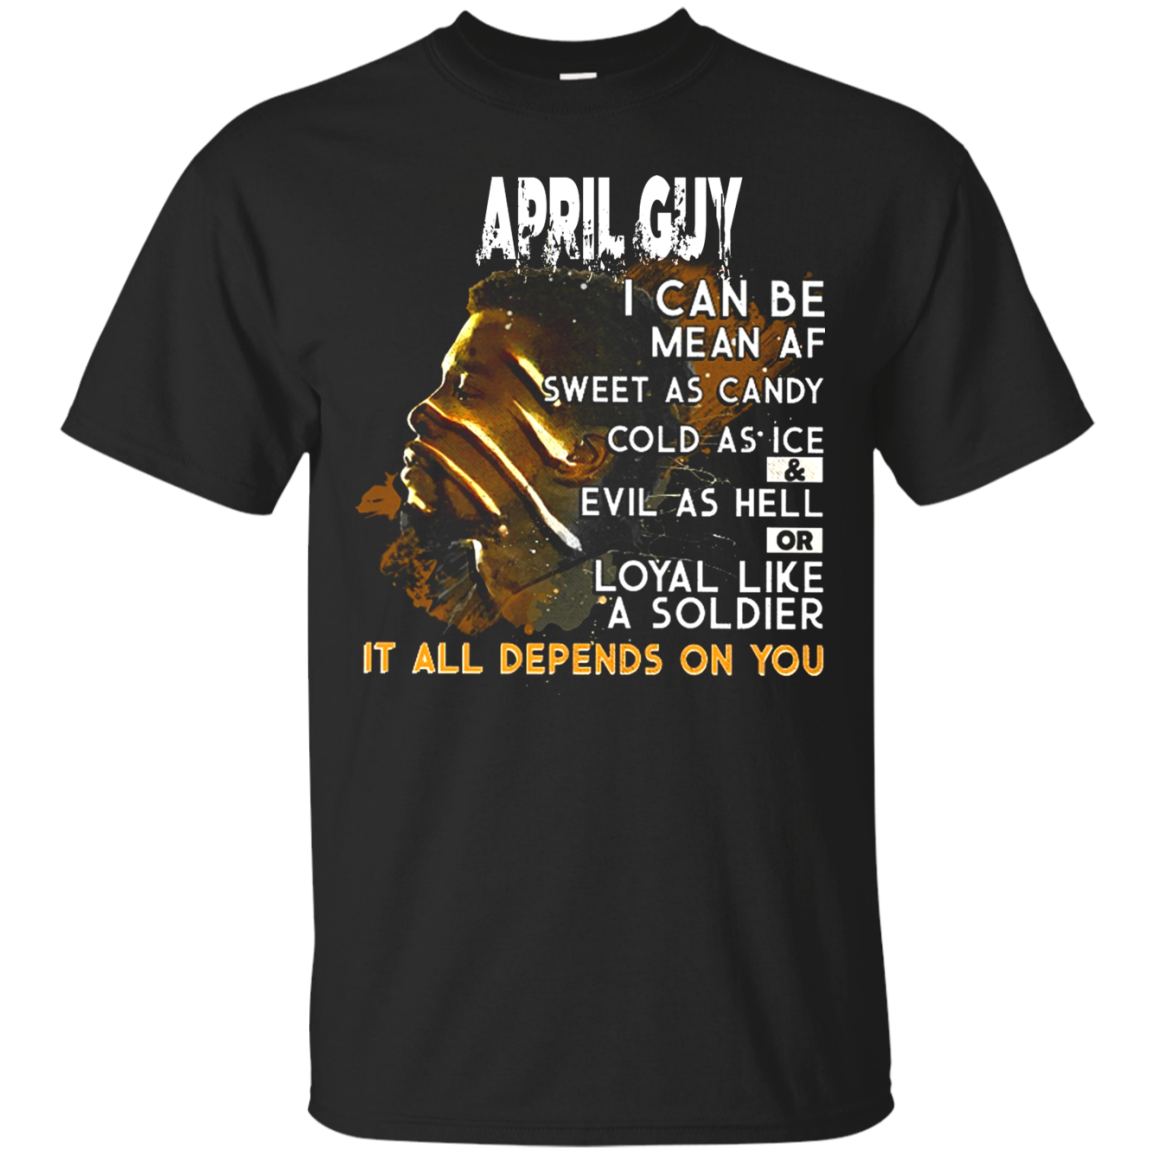 April Guy I Can Be Mean Af Sweet As Candy Cold As Ice T shirt hoodie sweater Men